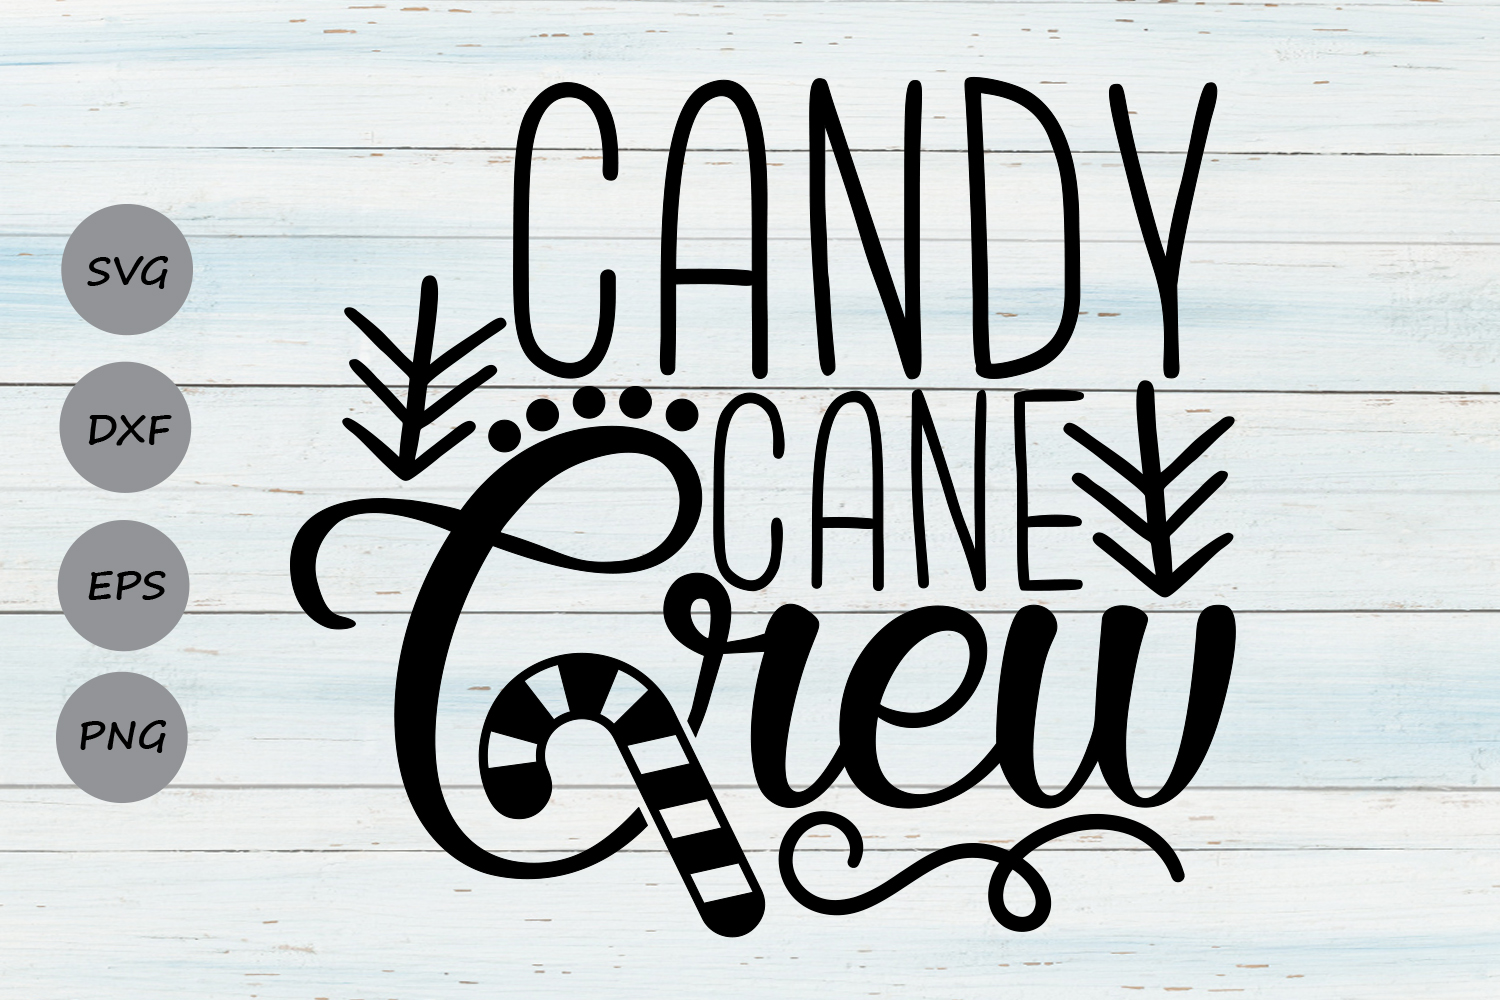 Download Free Candy Cane Crew Svg Graphic By Cosmosfineart Creative Fabrica for Cricut Explore, Silhouette and other cutting machines.